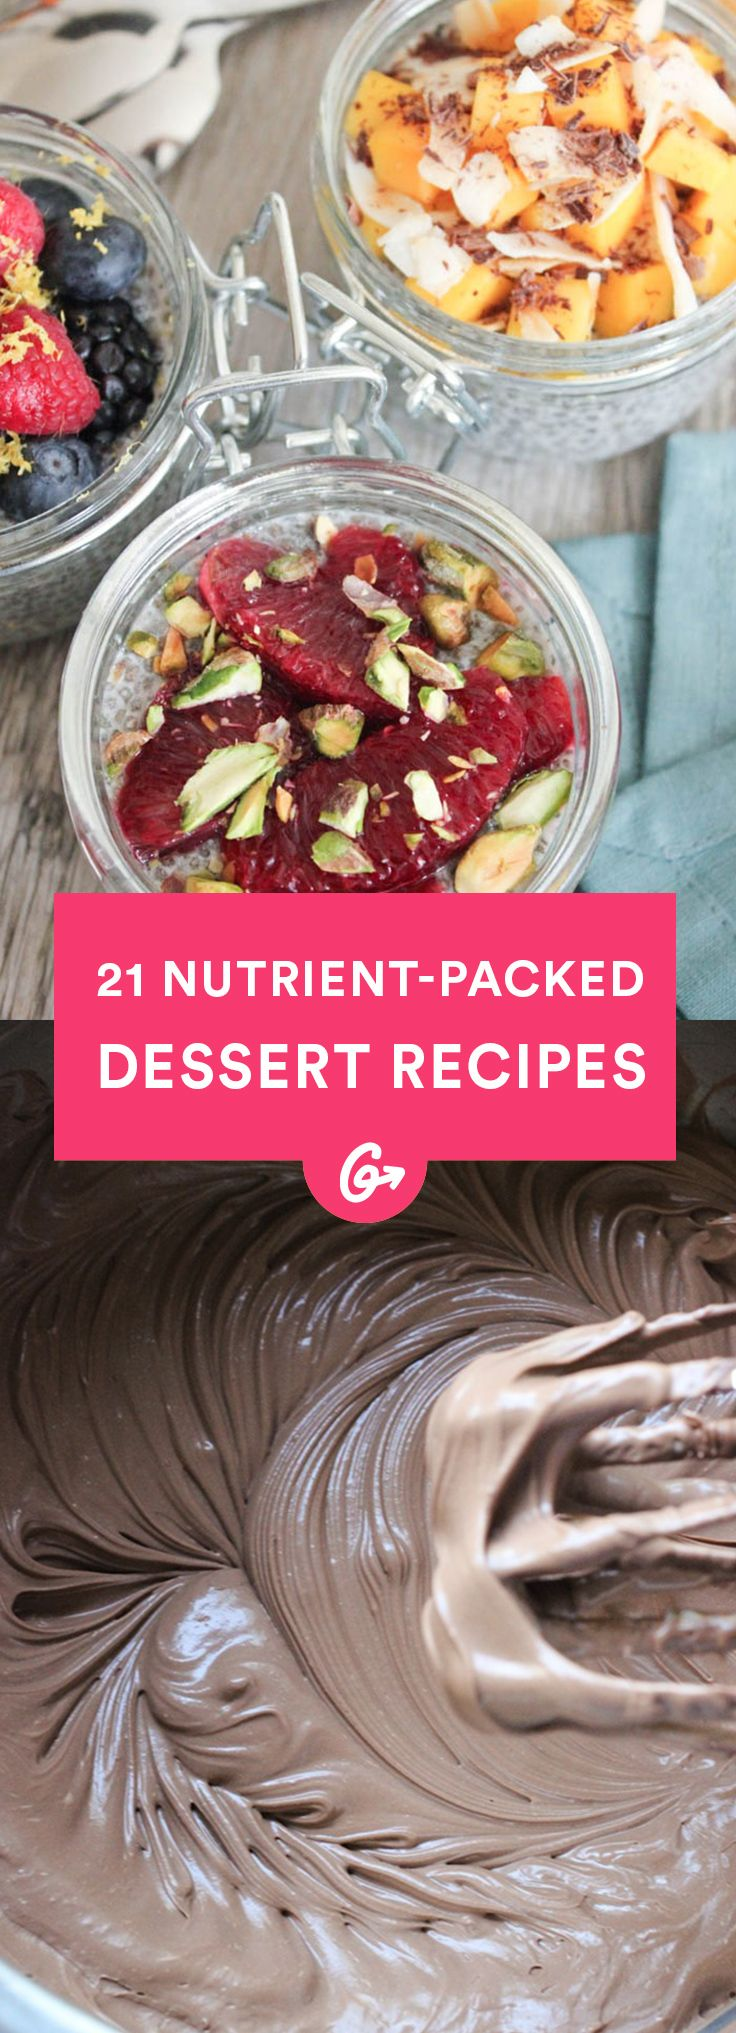 The Best Delicious Desserts Made Healthier From Around the Web #healthy #dessert #recipes http://greatist.com/health/desserts-unexpected-healthy-ingredients